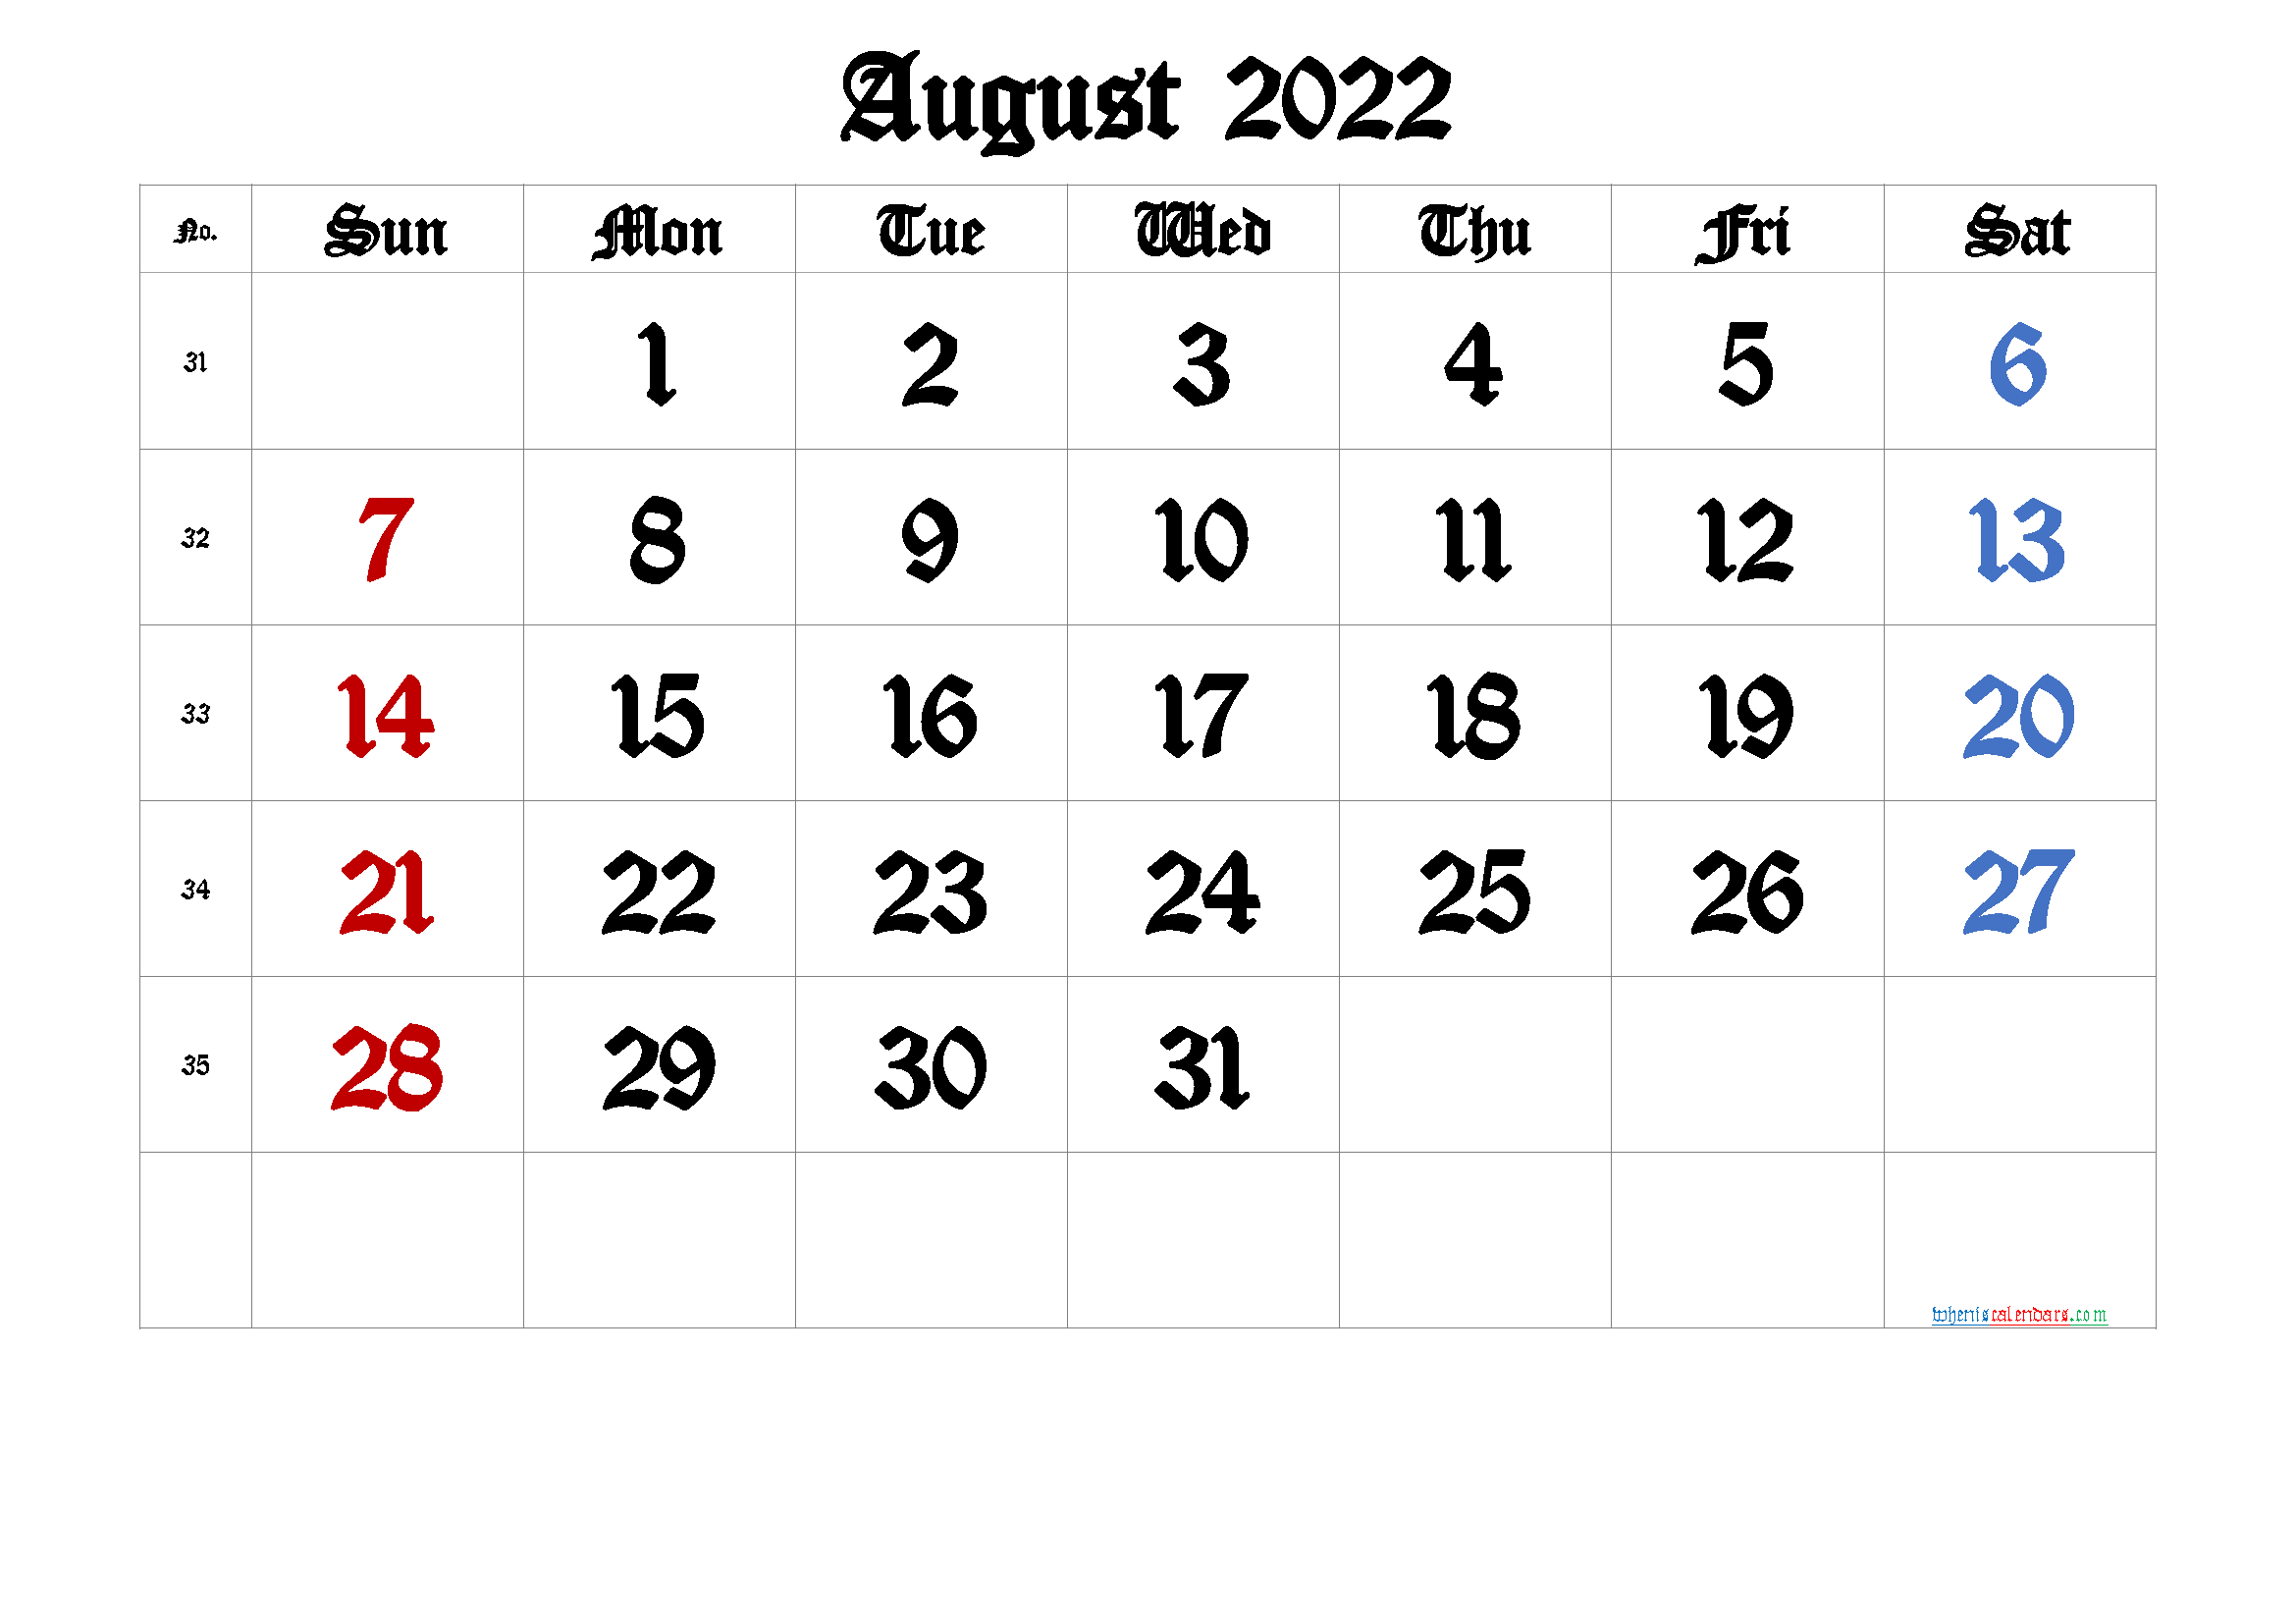 August 2022 Printable Calendar with Week Numbers